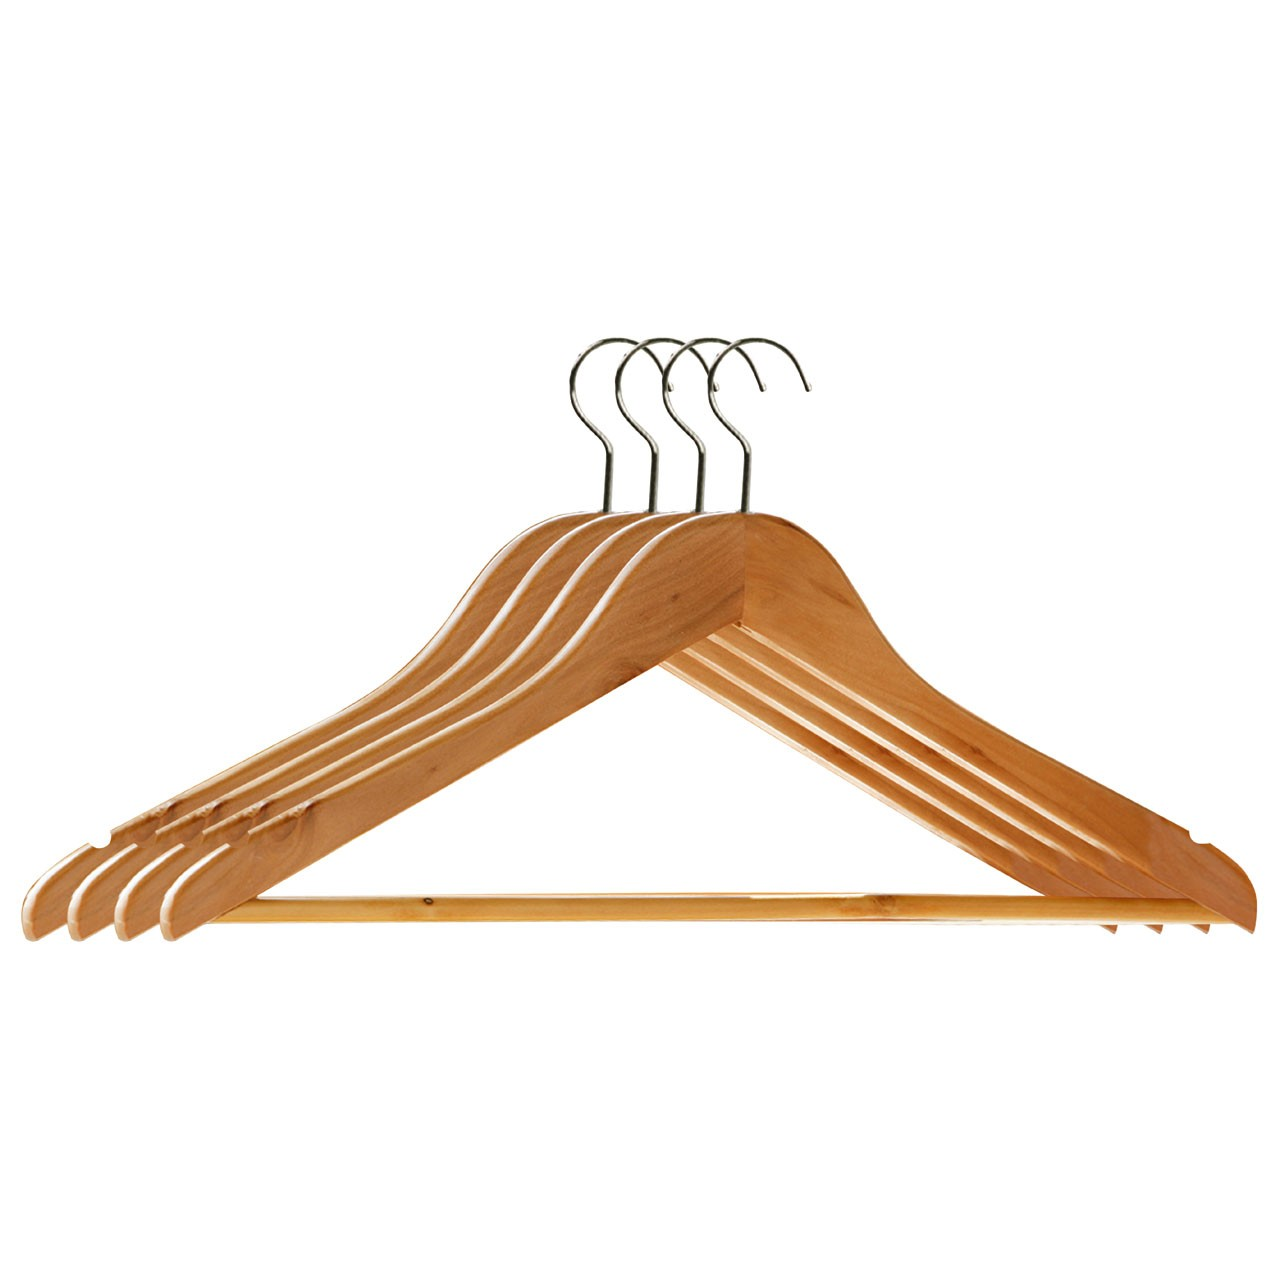 Prime Furnishing Wooden Clothes Hangers - Set of 4